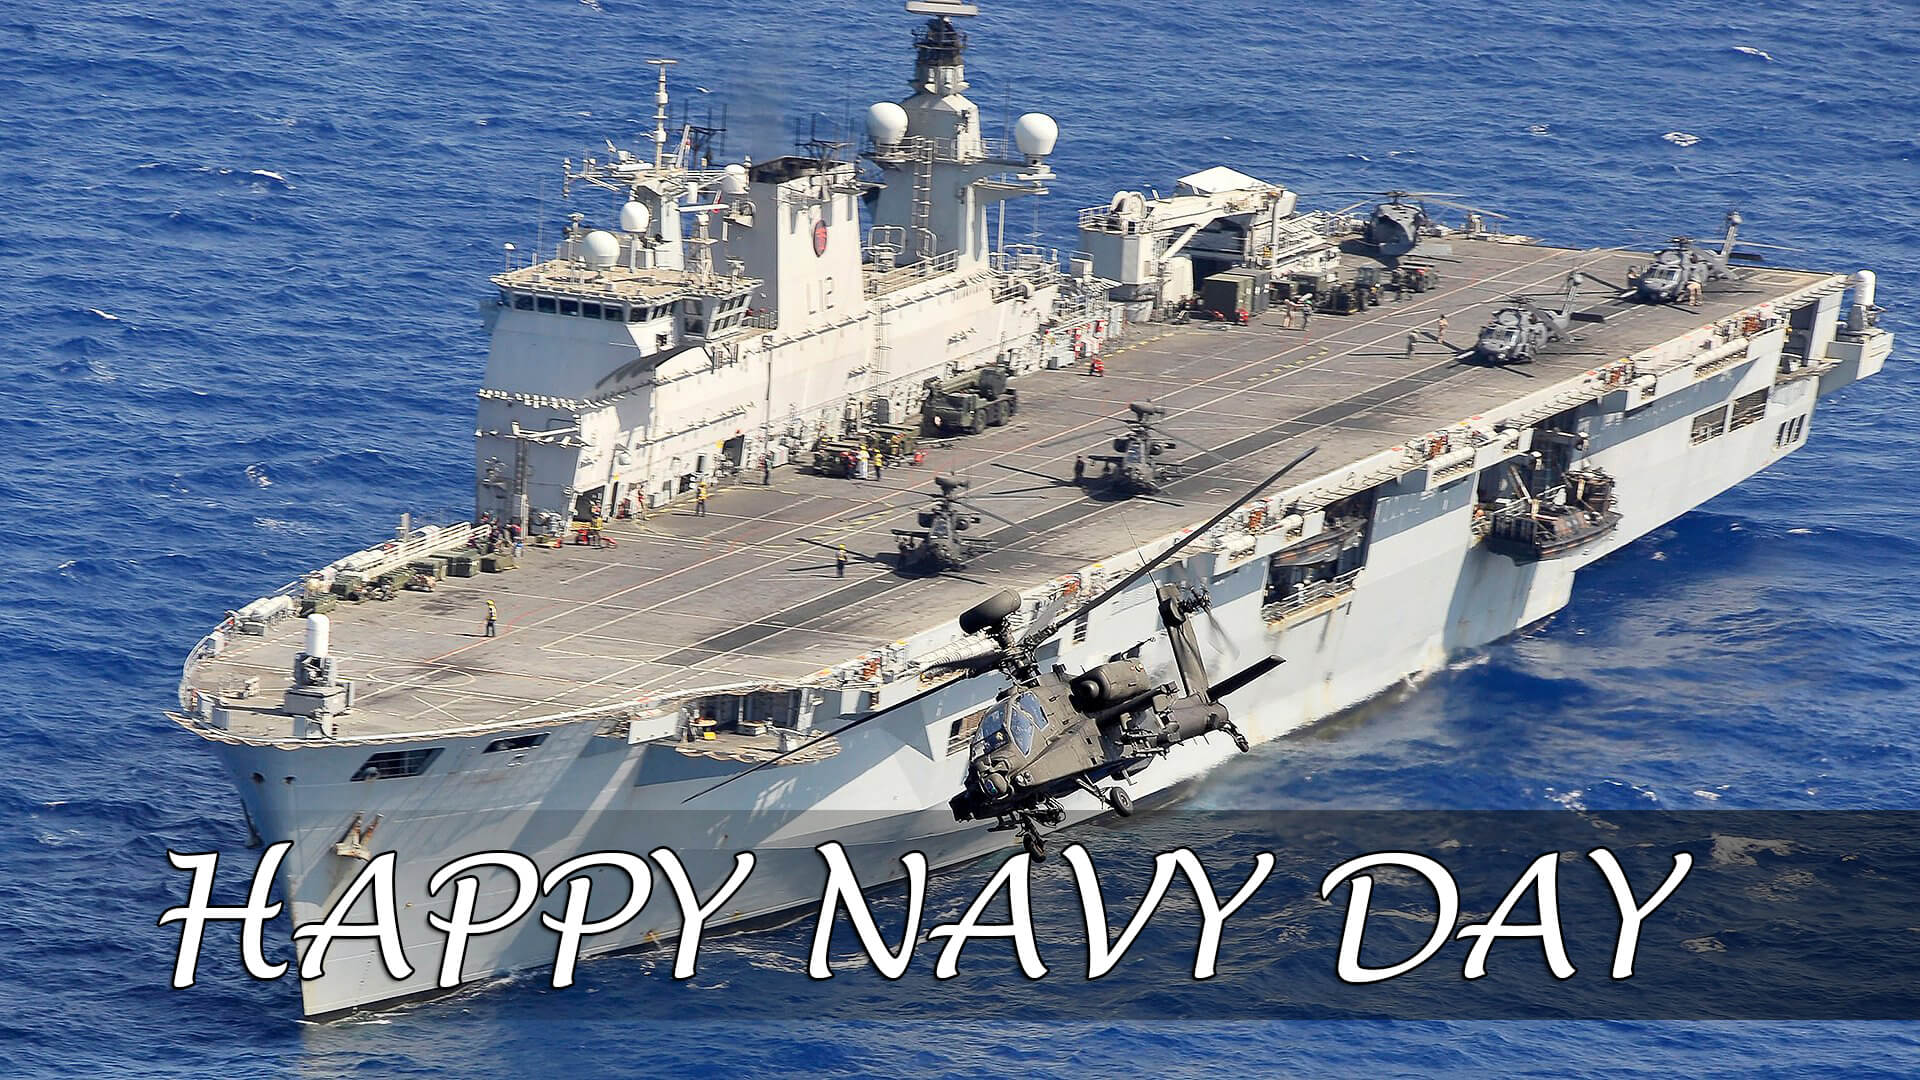 happy navy day greetings wishes hd wallpaper